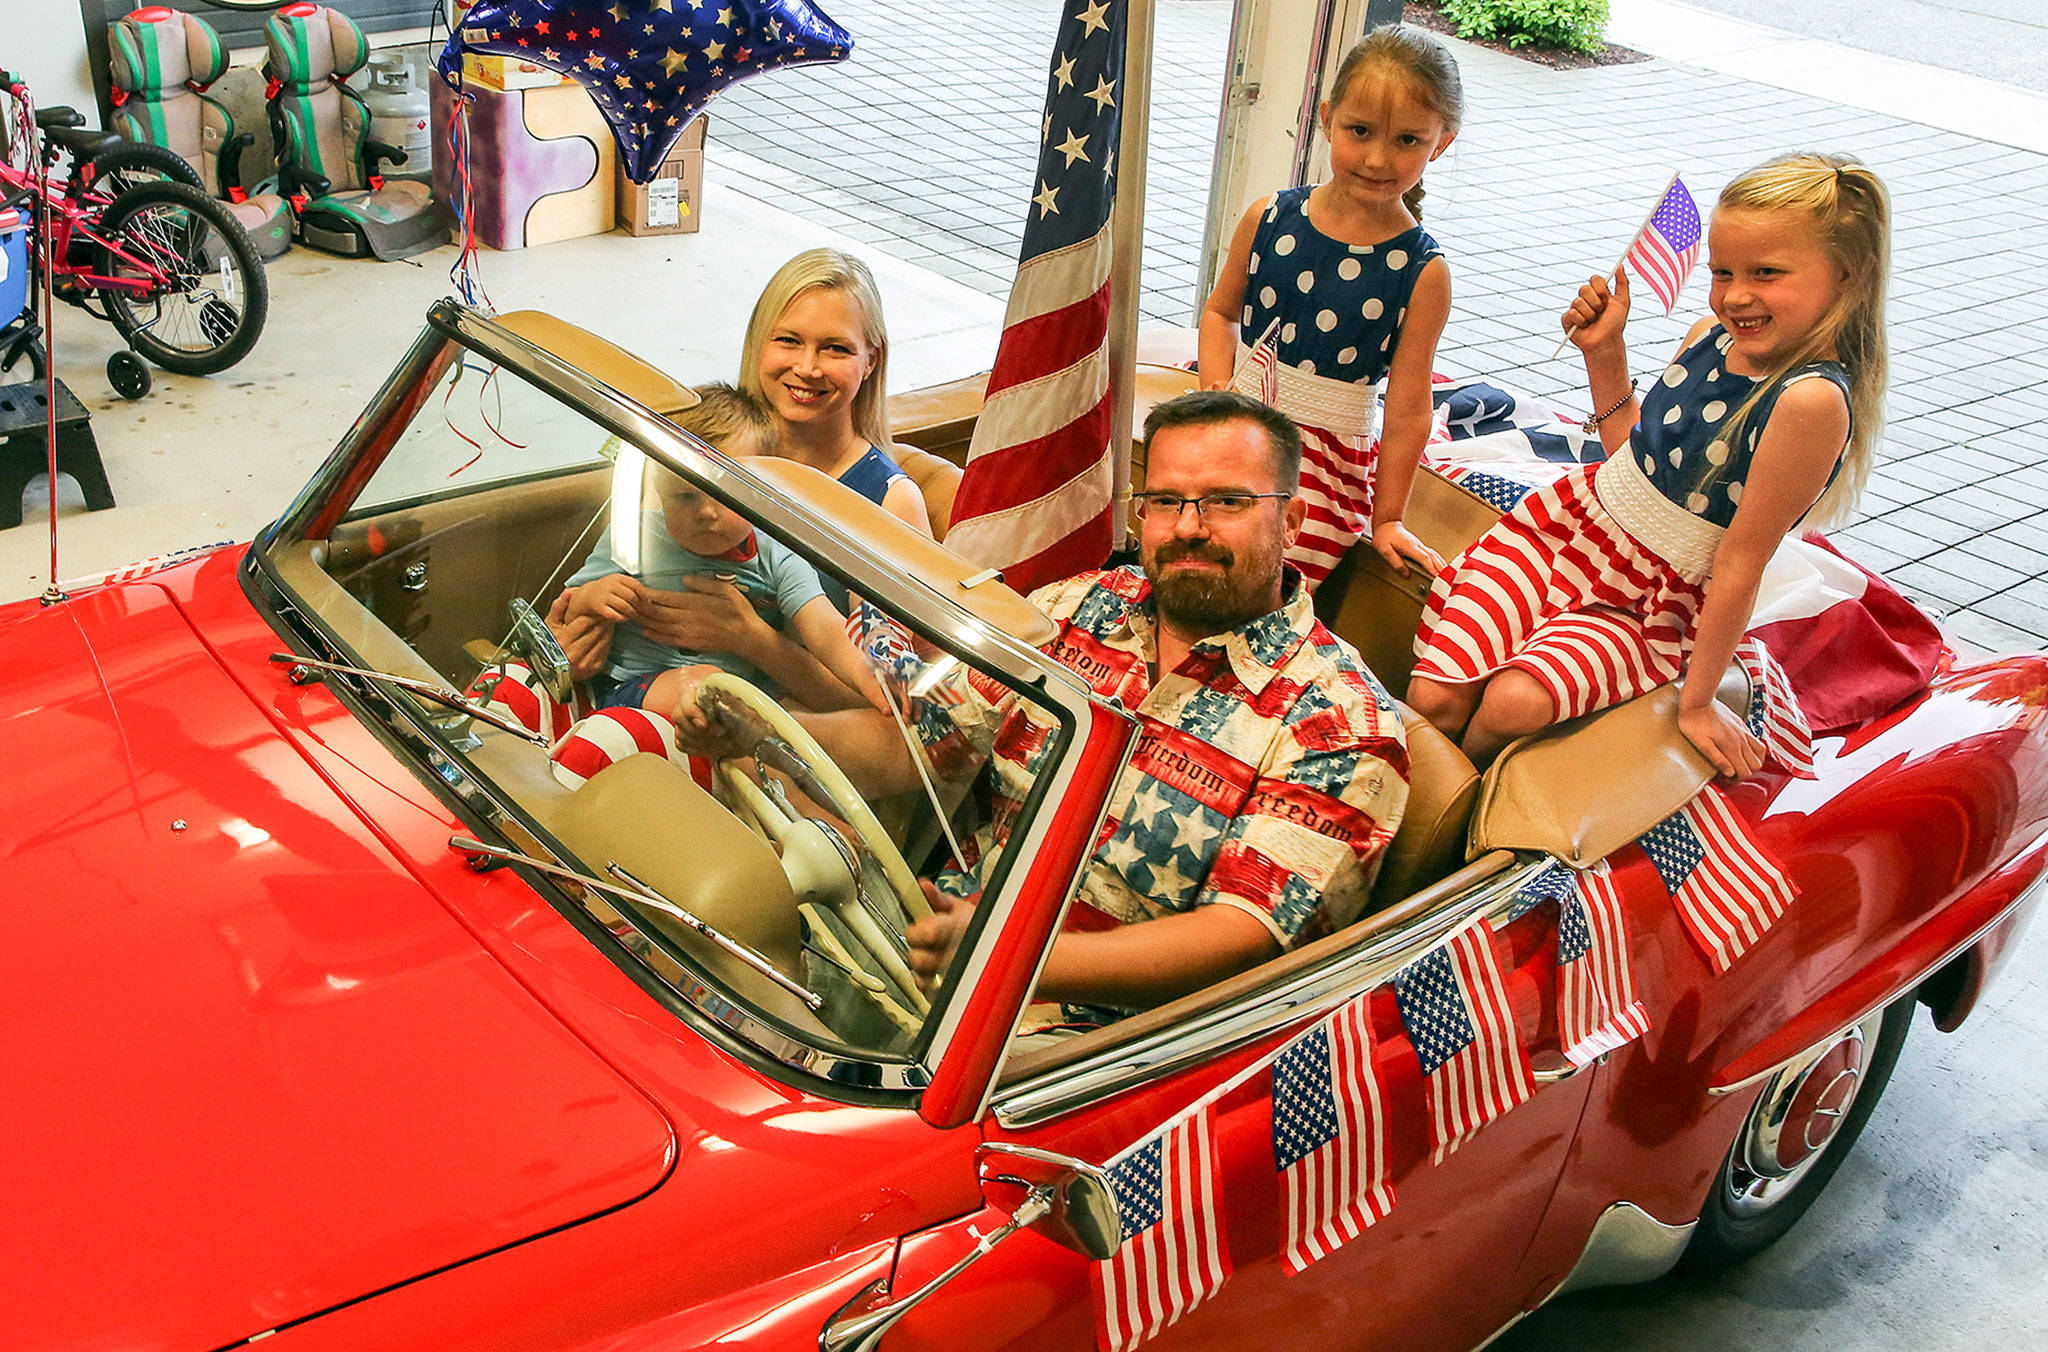 Olaf Wecker of Seattle offered up his red 1958 Mercedes 190SL convertible for the mayor's parade car in the Edmonds 4th of July parade. He is posed here with his wife, Christy, holding Walter, Karolin (left back) and Katrin (far right). (Kevin Clark / The Herald)